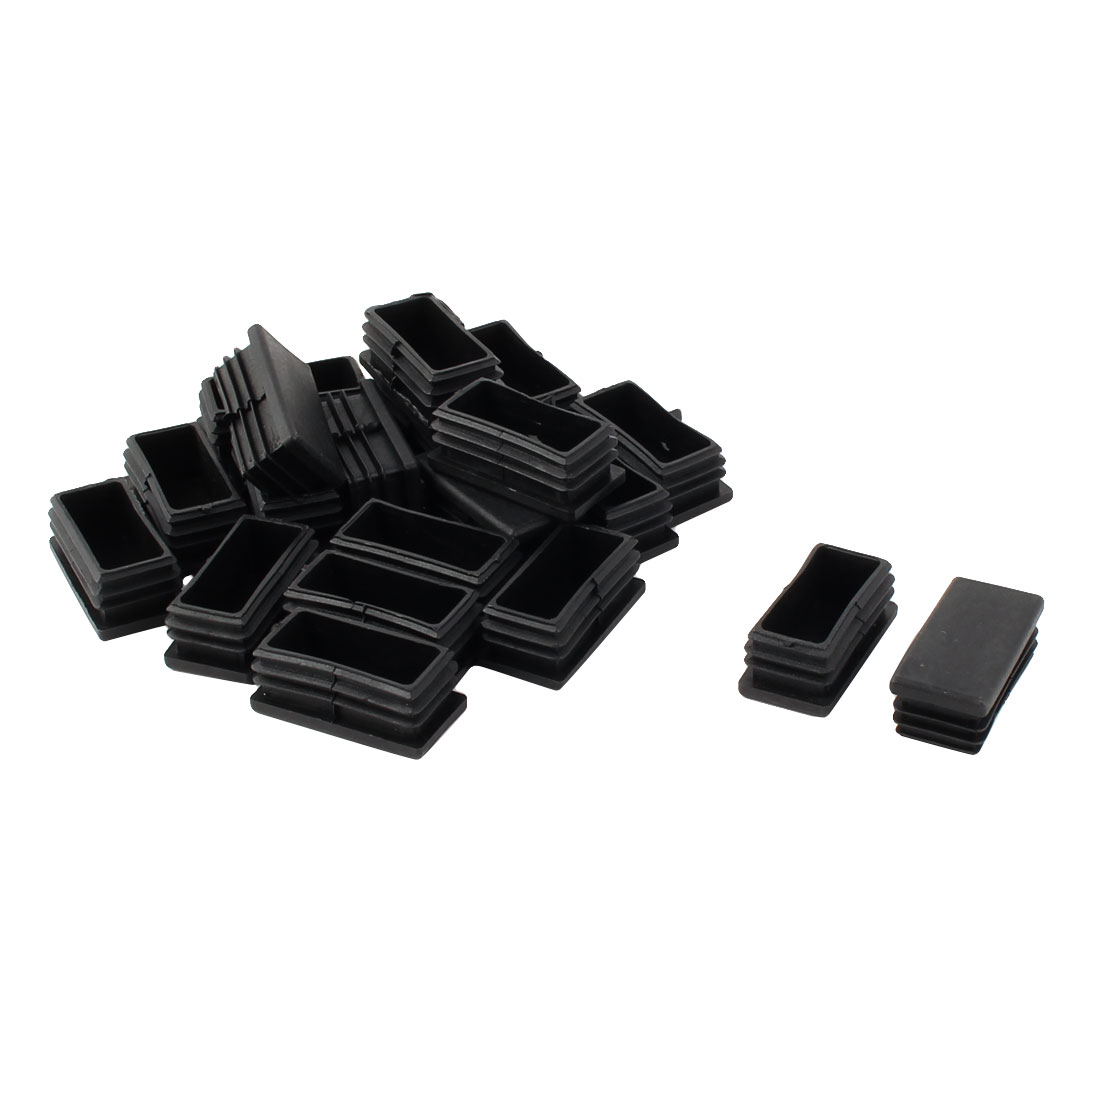 Furniture Chair Plastic Tube Insert Cap Protectors Black 50mm x 25mm 20pcs